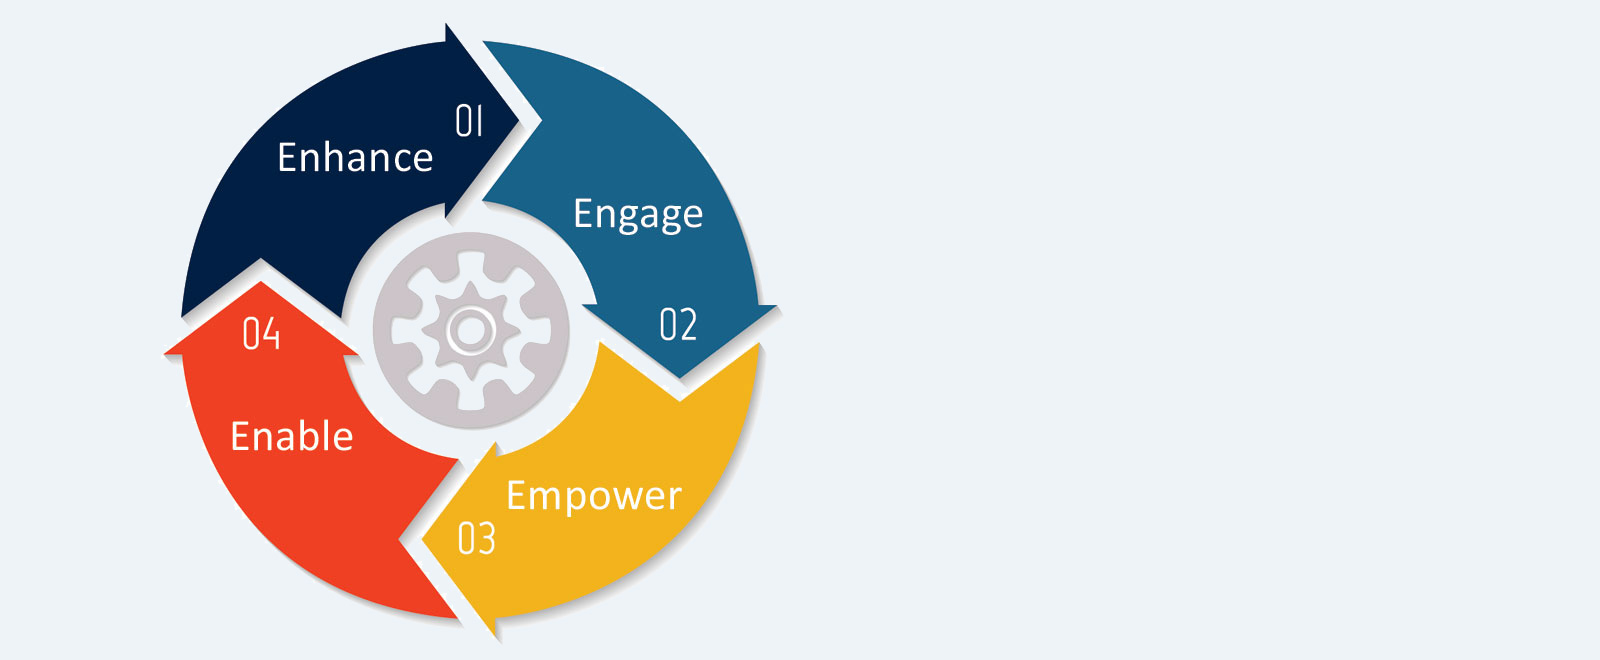 enhance-empower-engage-enable